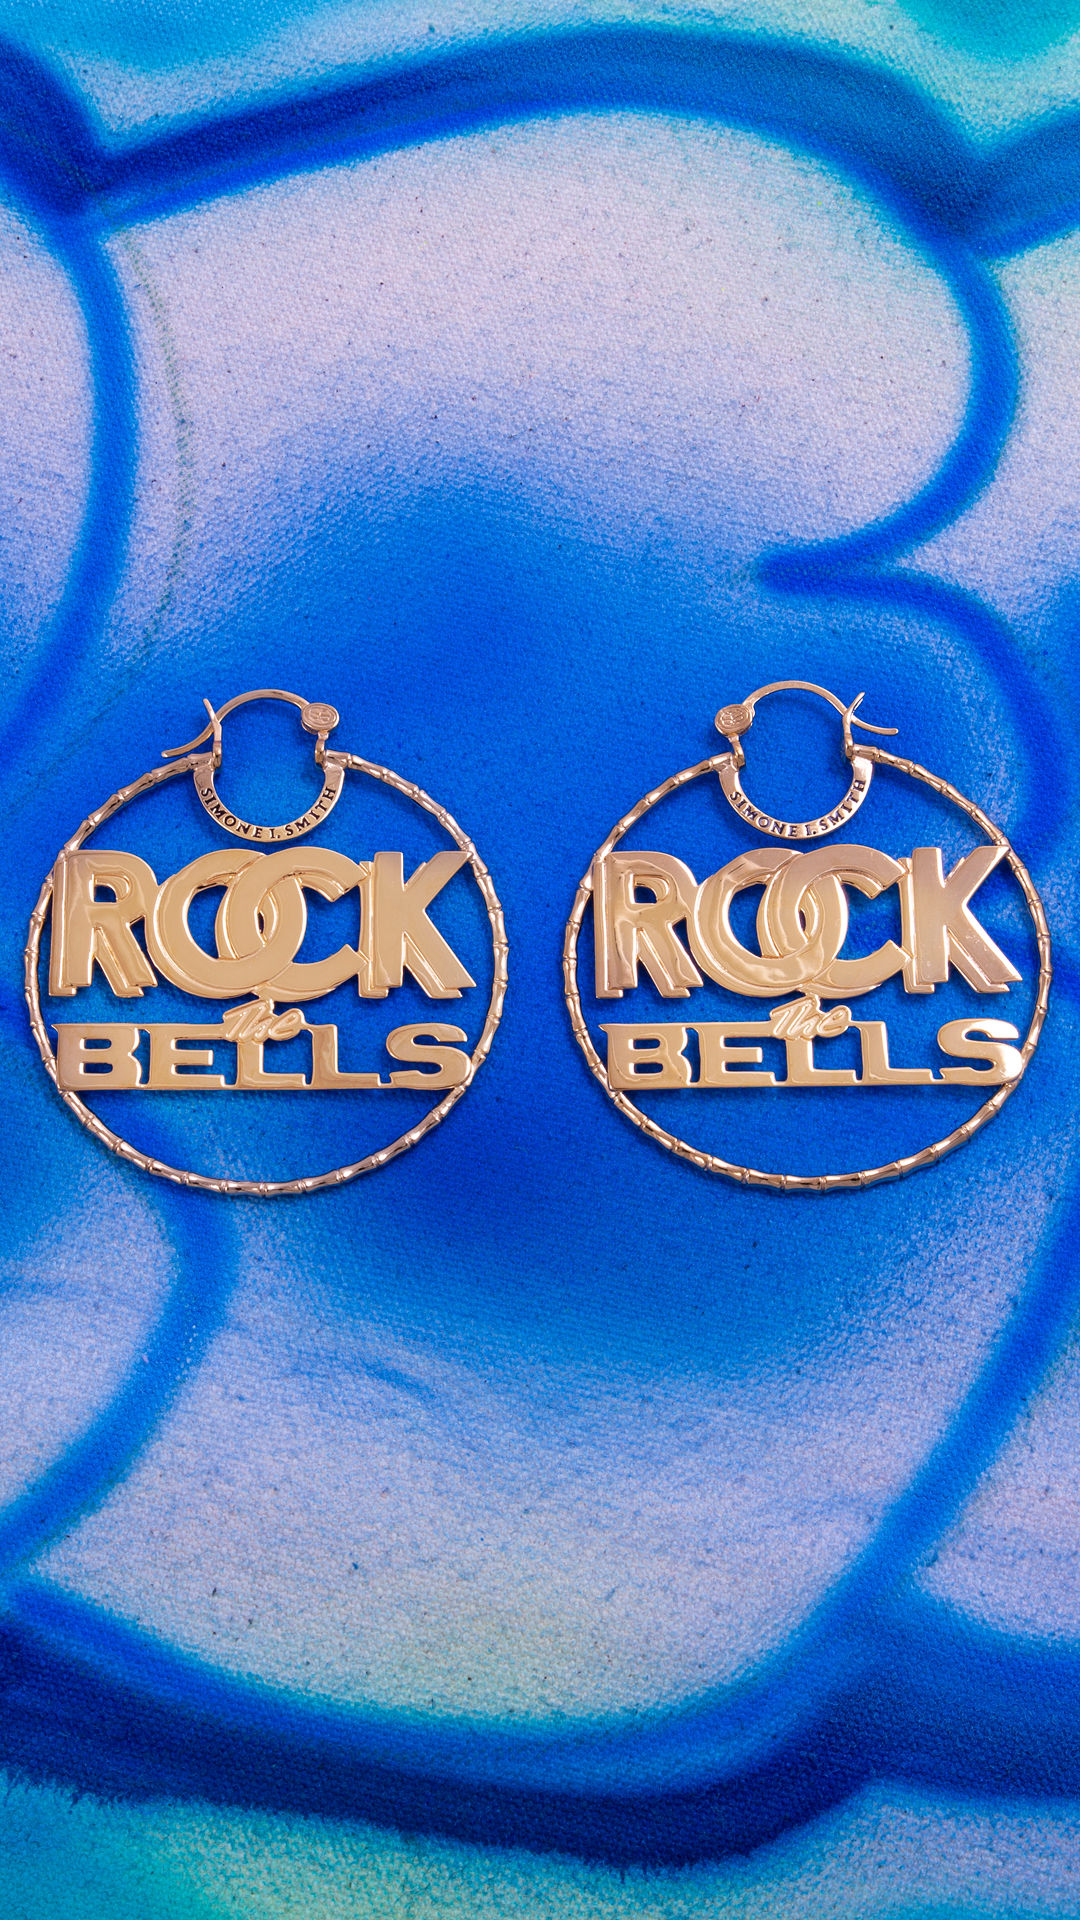 Rock the bell